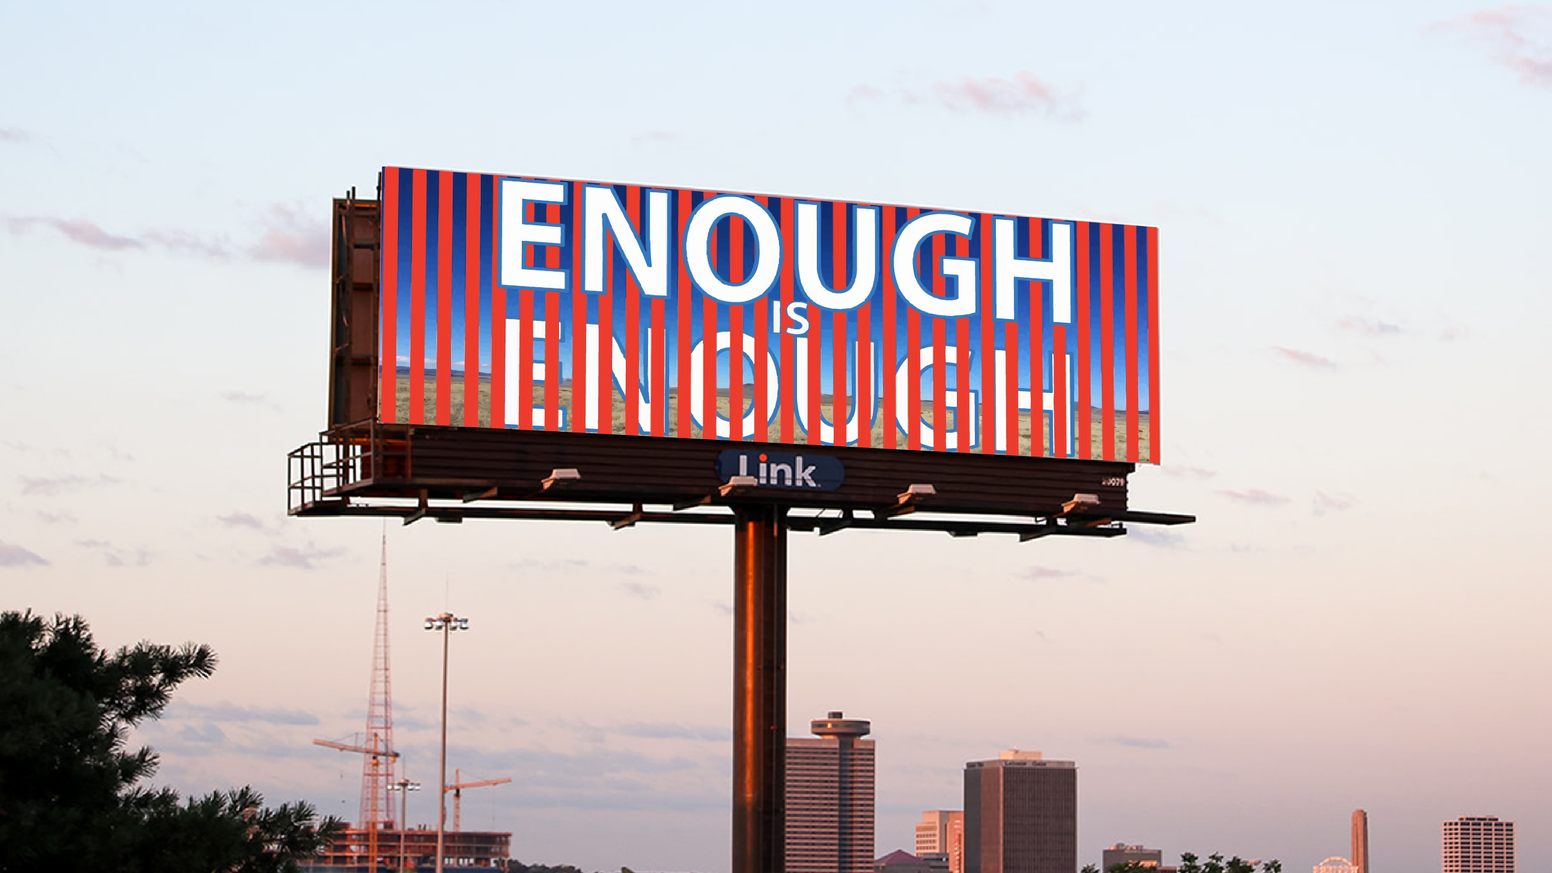 We're working to get Trump out of office by placing artist-designed billboards in swing states.